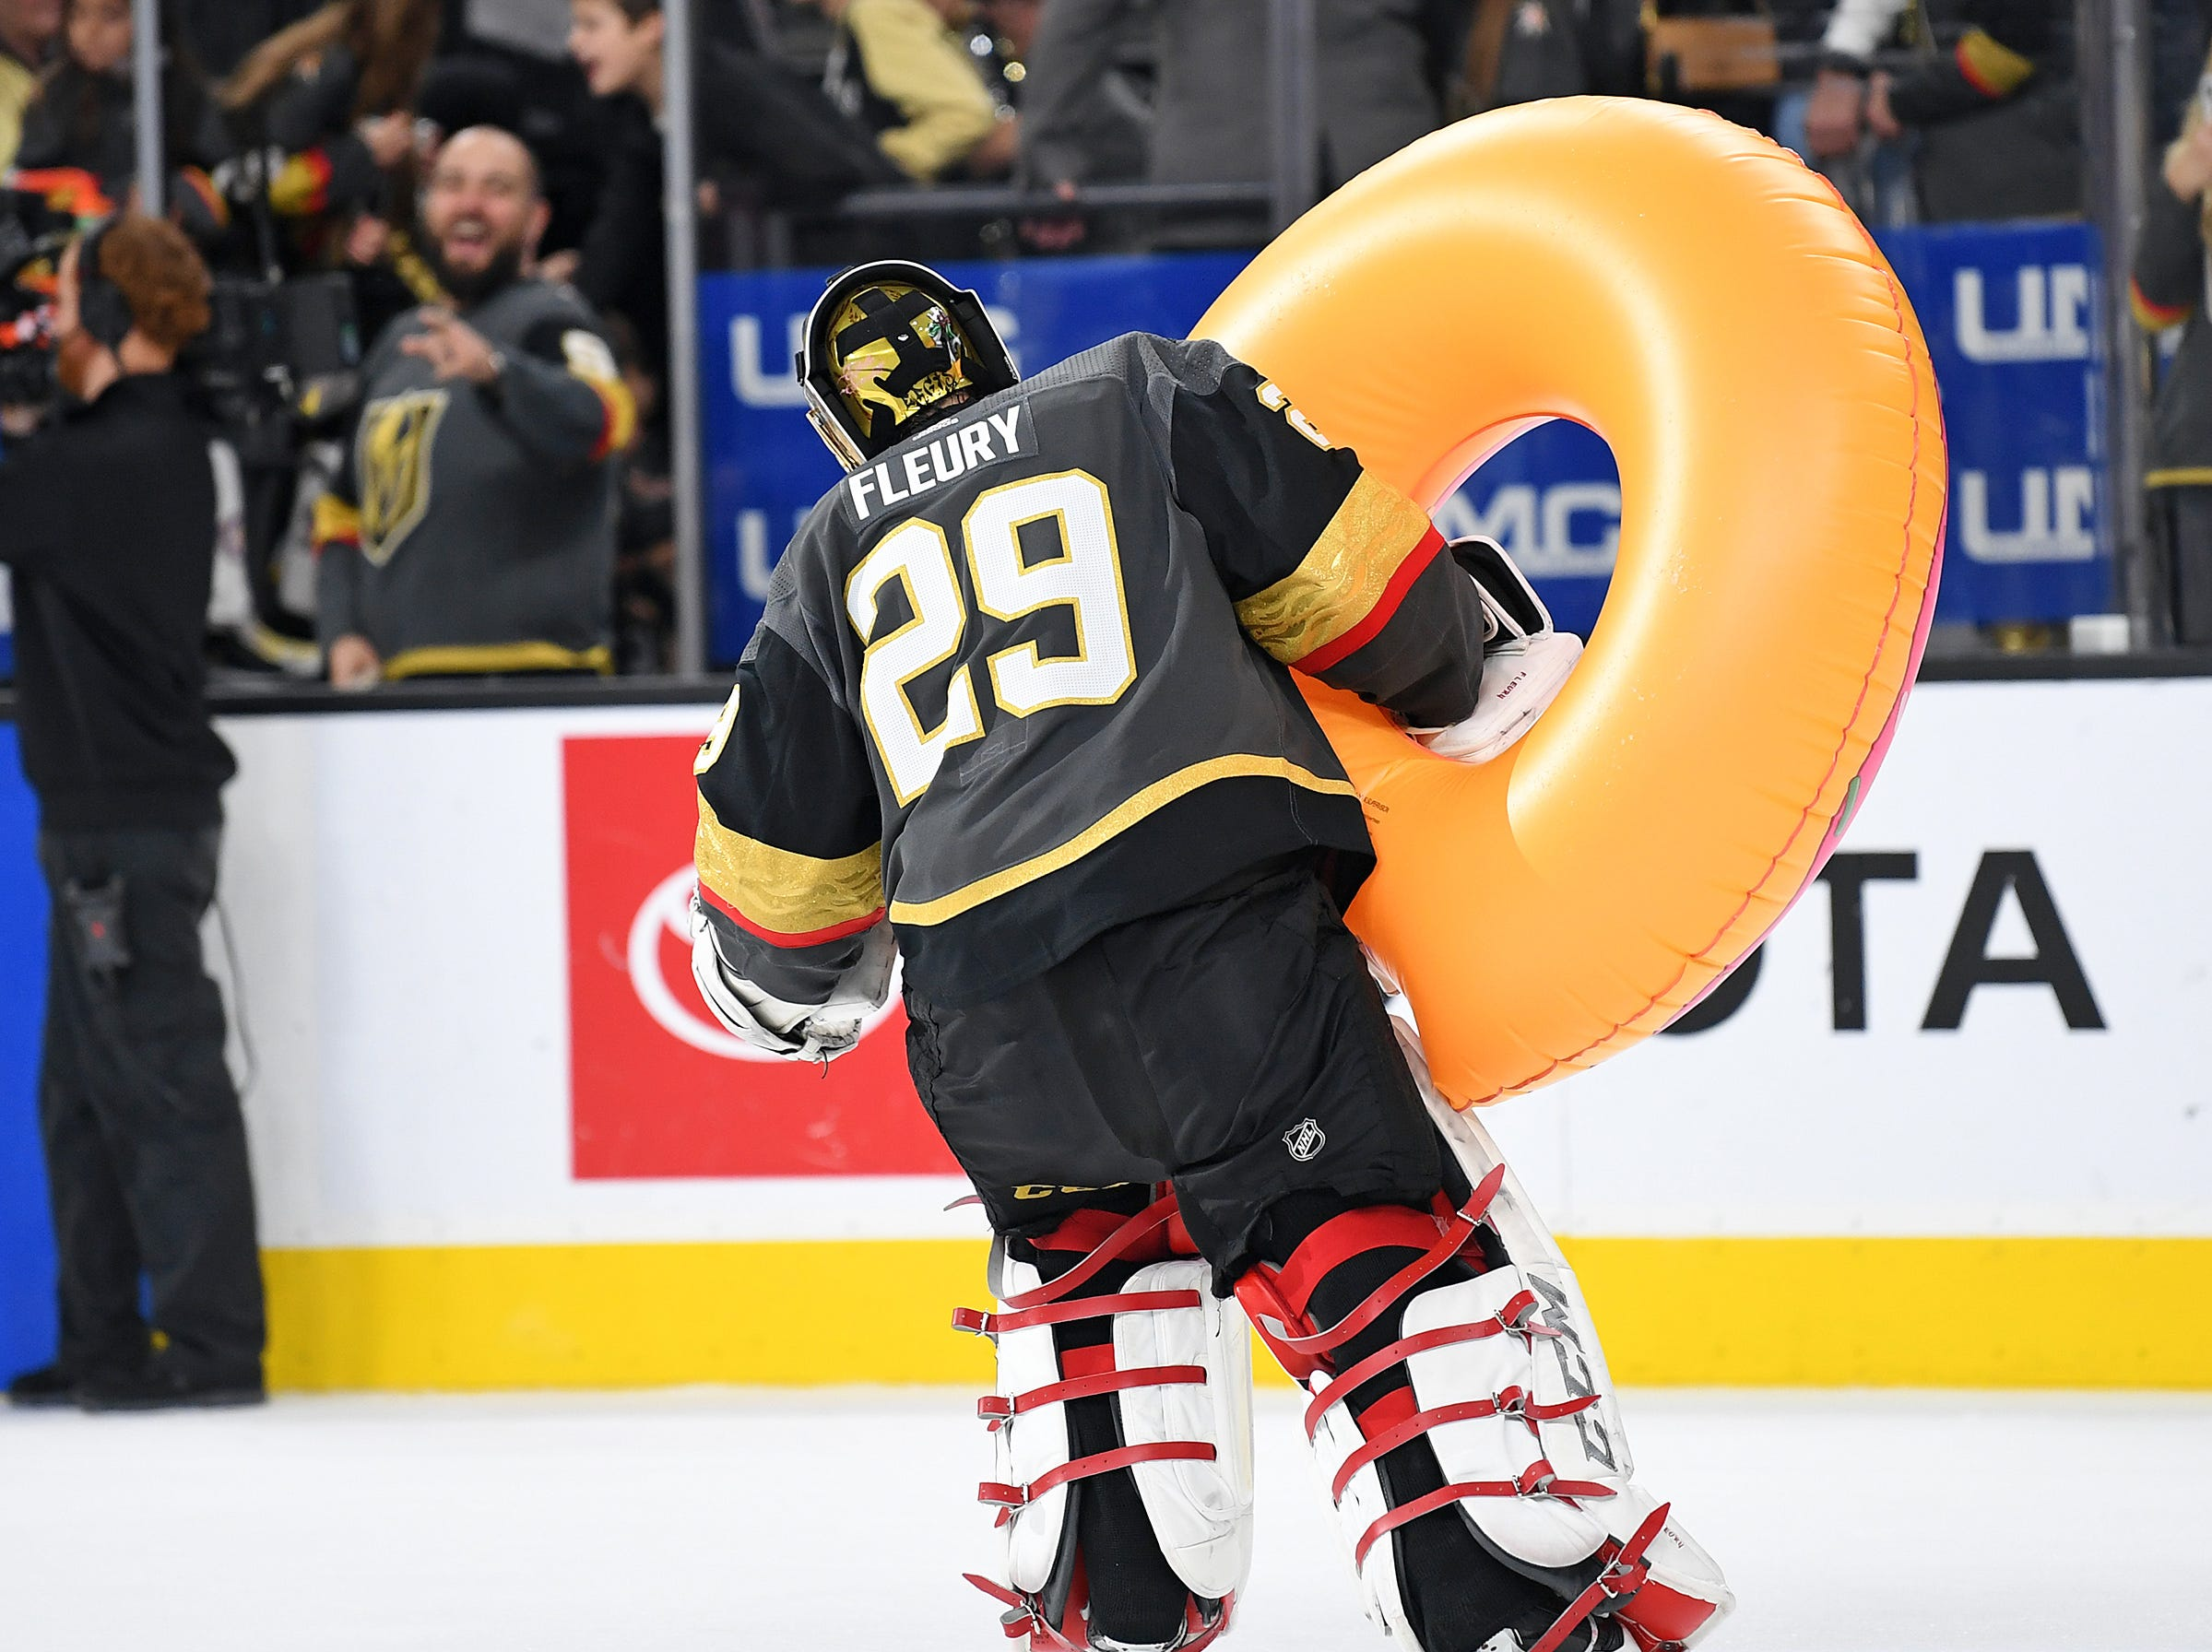 March 3: Vegas Golden Knights goaltender Marc-Andre Fleury carries an inflatable doughnut after shutting out the Vancouver Canucks 3-0 at T-Mobile Arena.